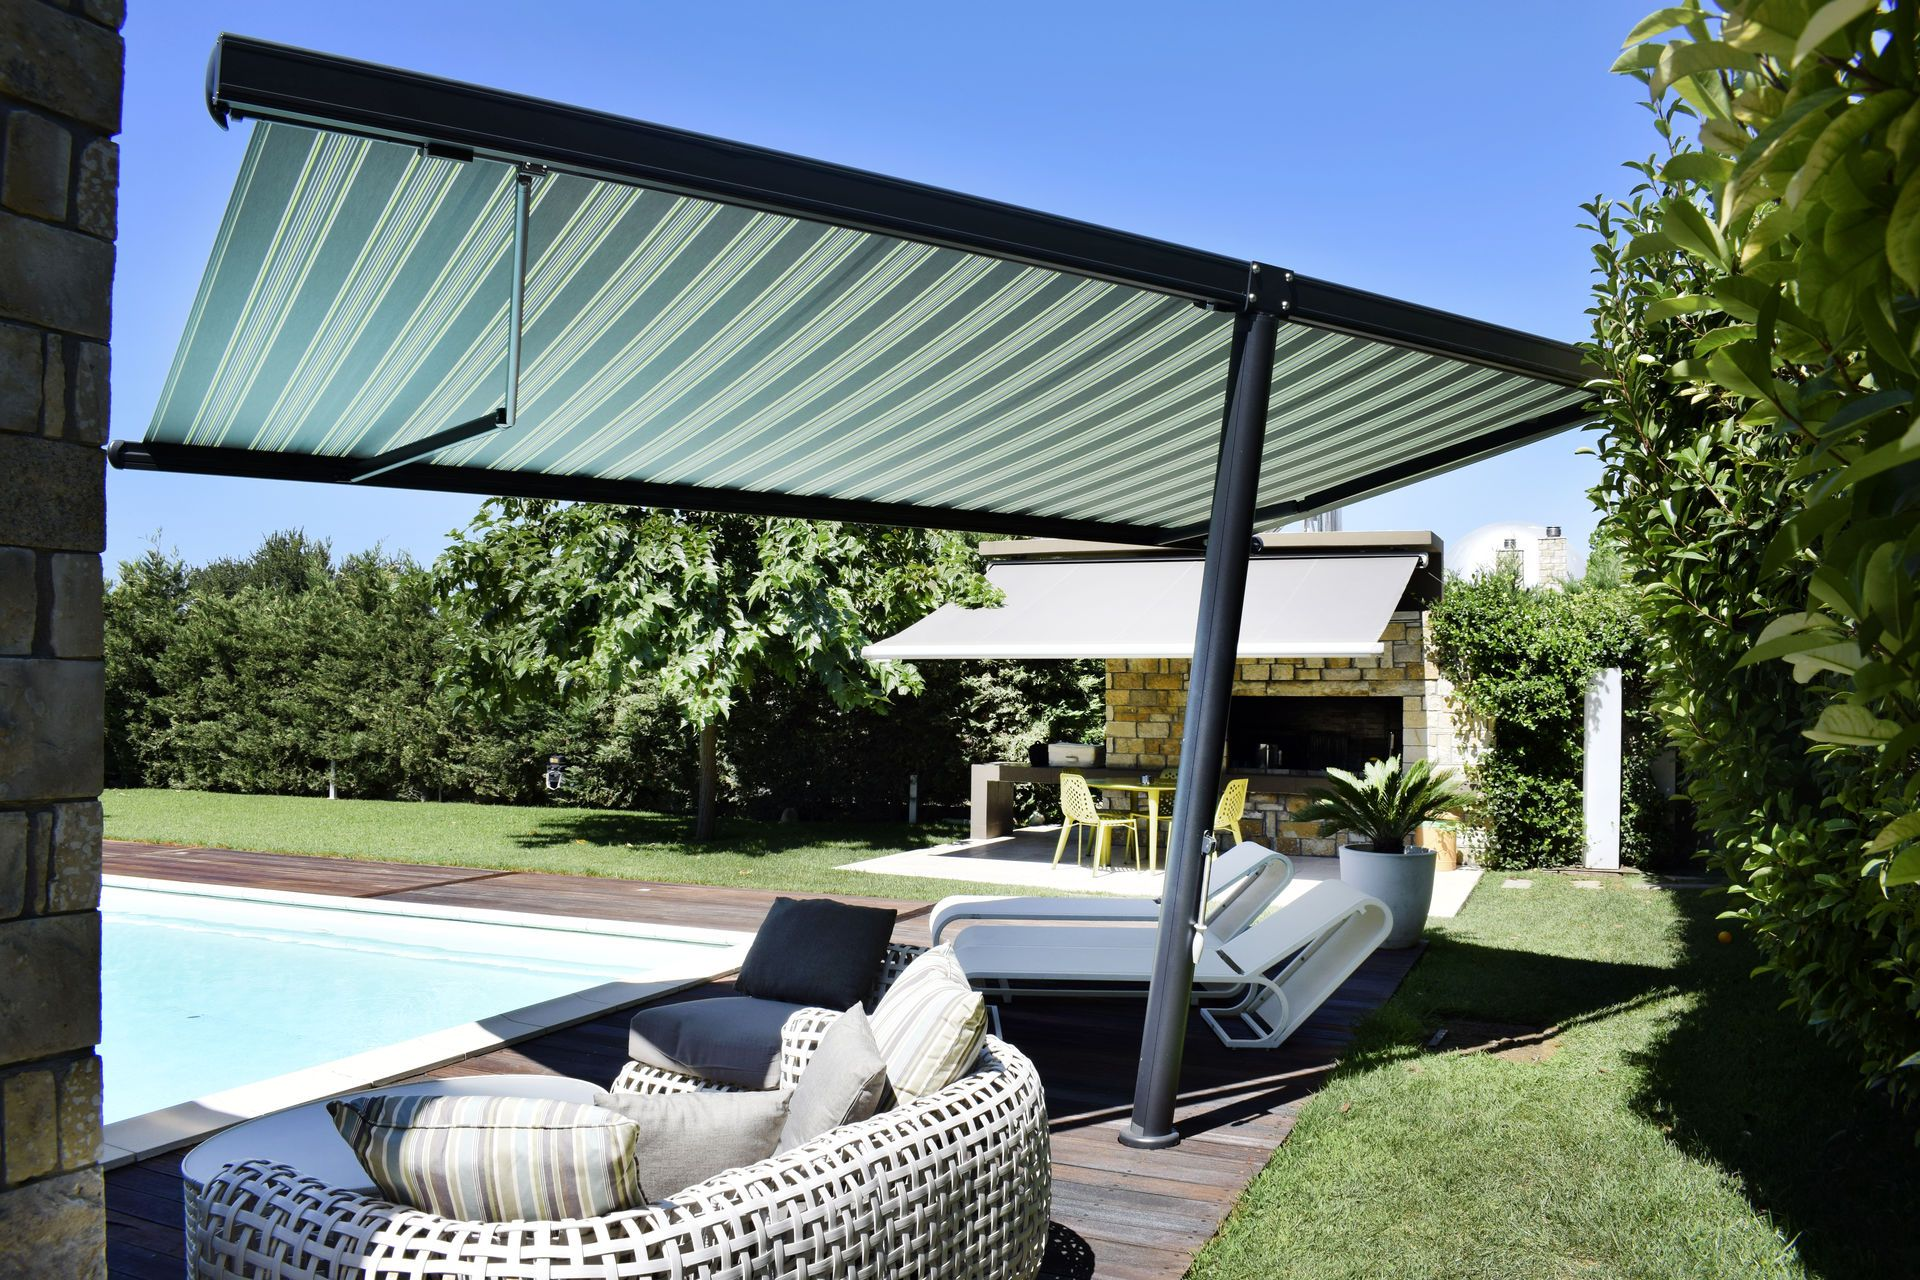 Markilux Planet Freestanding Awnings Roche Awnings Outdoor Living Space Outdoor Living Awning